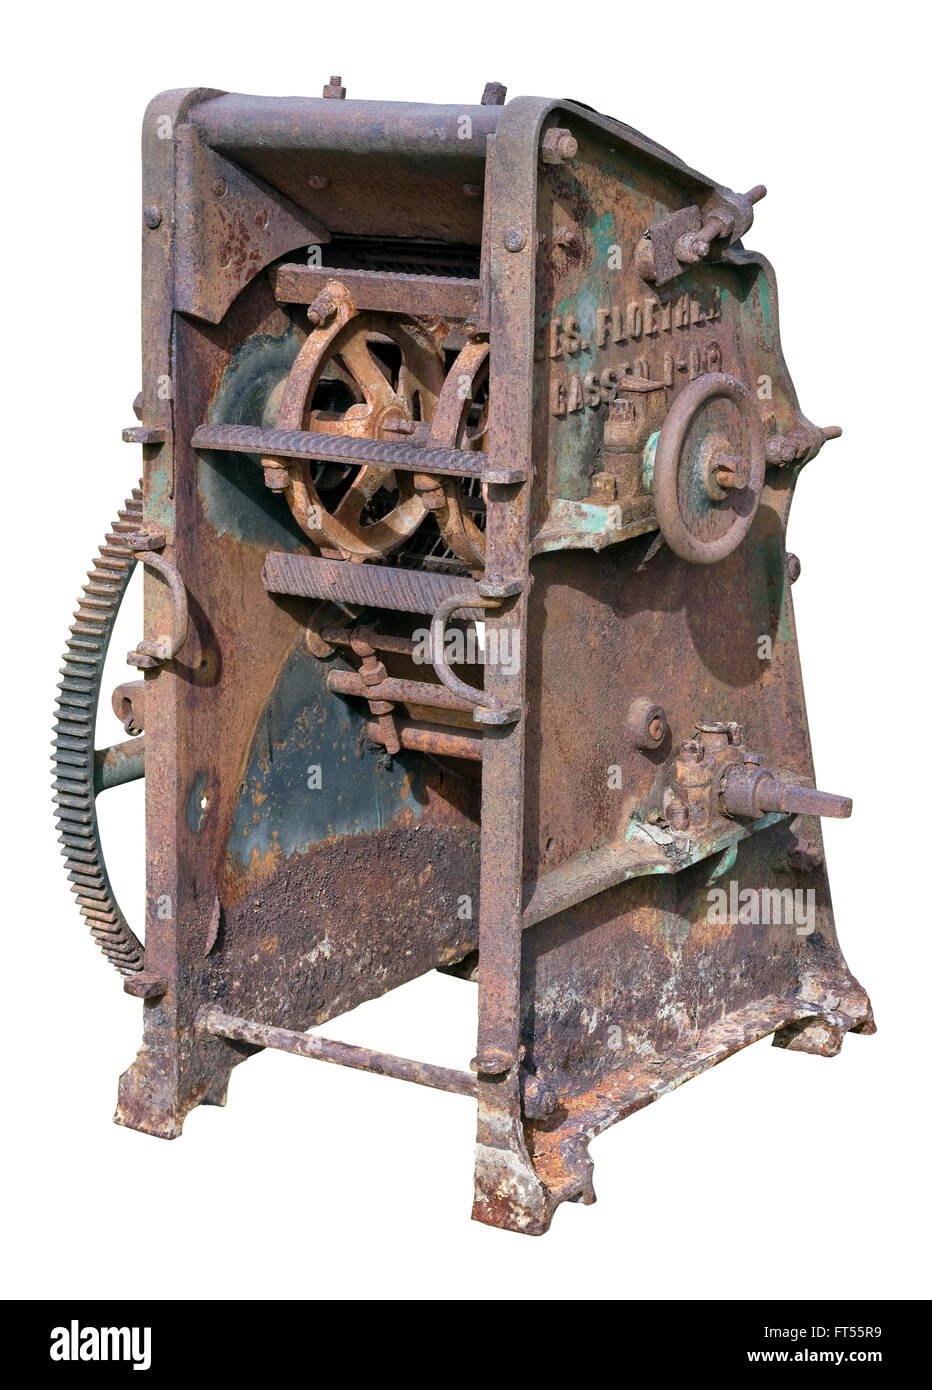 9bfd0414 Retro vintage rusty agricultural machinery - mechanism for Stock ...